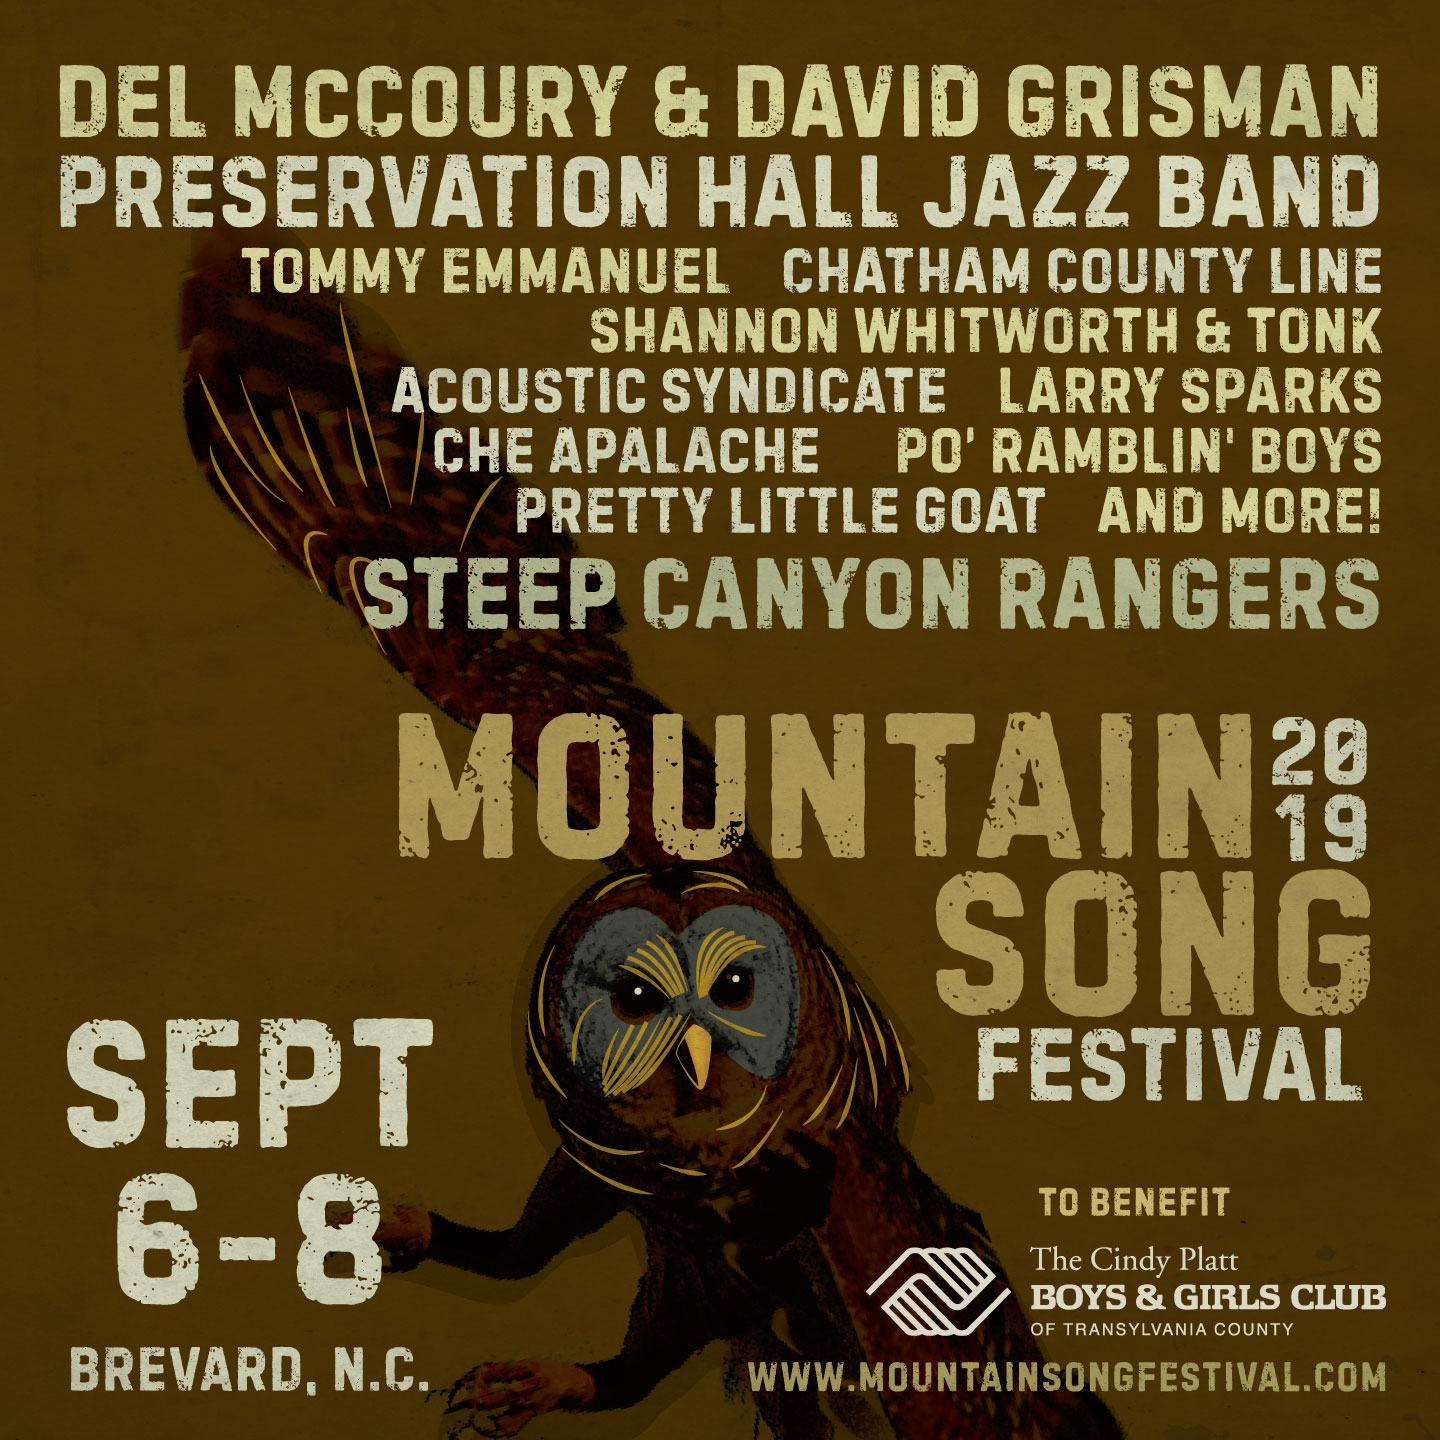 - FRIDAYPreservation Hall Jazz BandTommy EmmanuelAcoustic SyndicateSATURDAYSteep Canyon RangersChatham County LineShannon Whitworth & TonkChe ApalachePo' Ramblin' BoysSUNDAYDel & Dawg (Del McCoury & David Grisman)Steep Canyon RangersLarry Sparks & The Lonesome RamblersPretty Little Goat